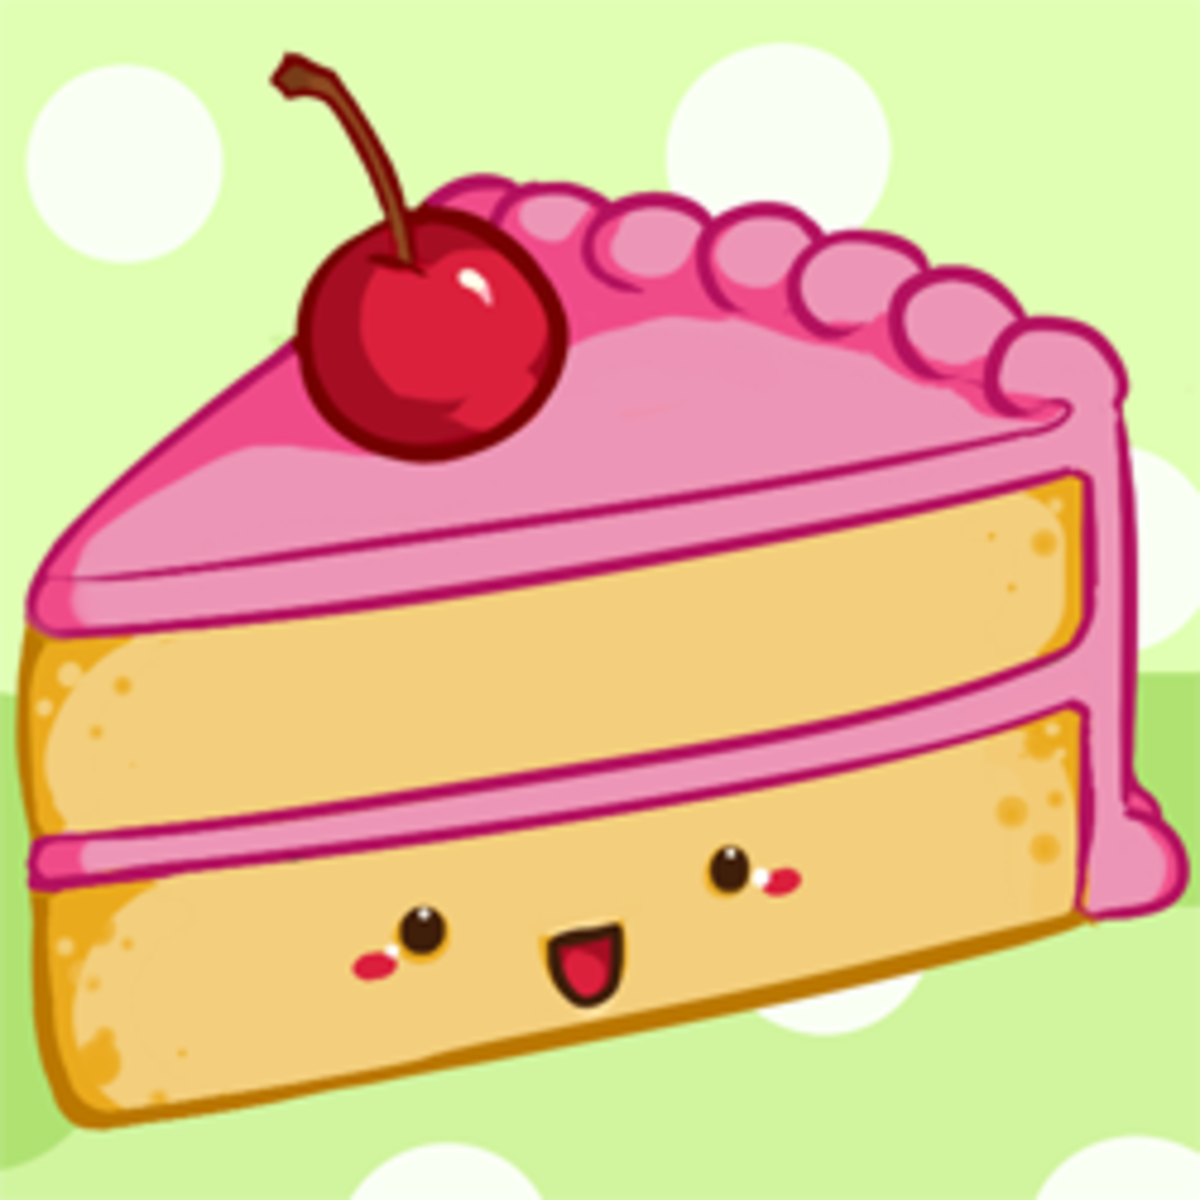 kawaii cute cake slice how to draw